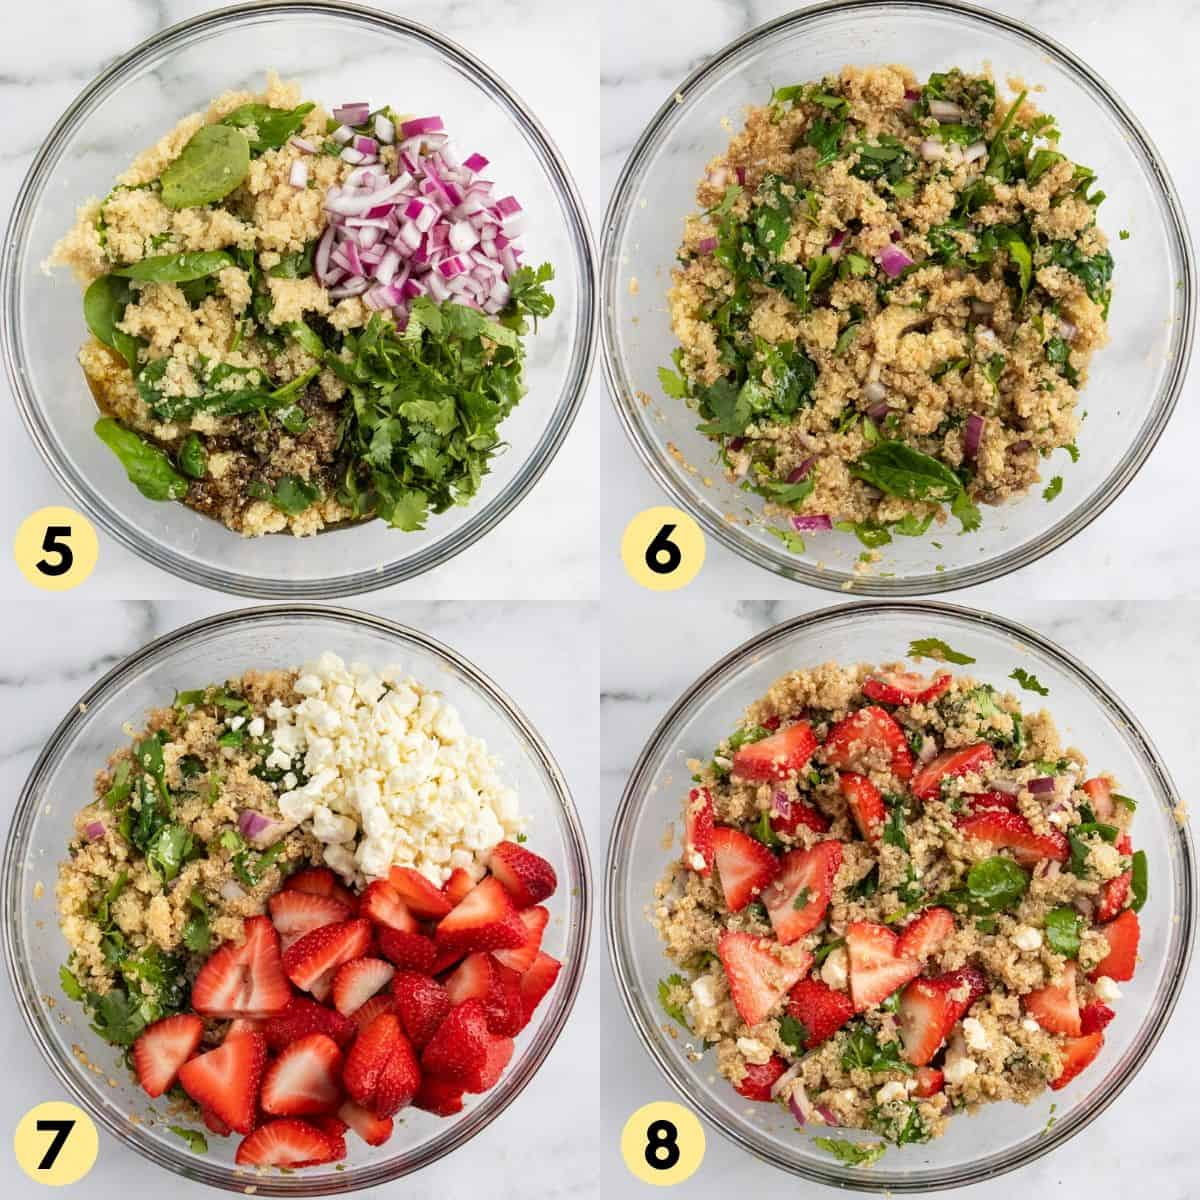 Process photos to put together strawberry quinoa salad.